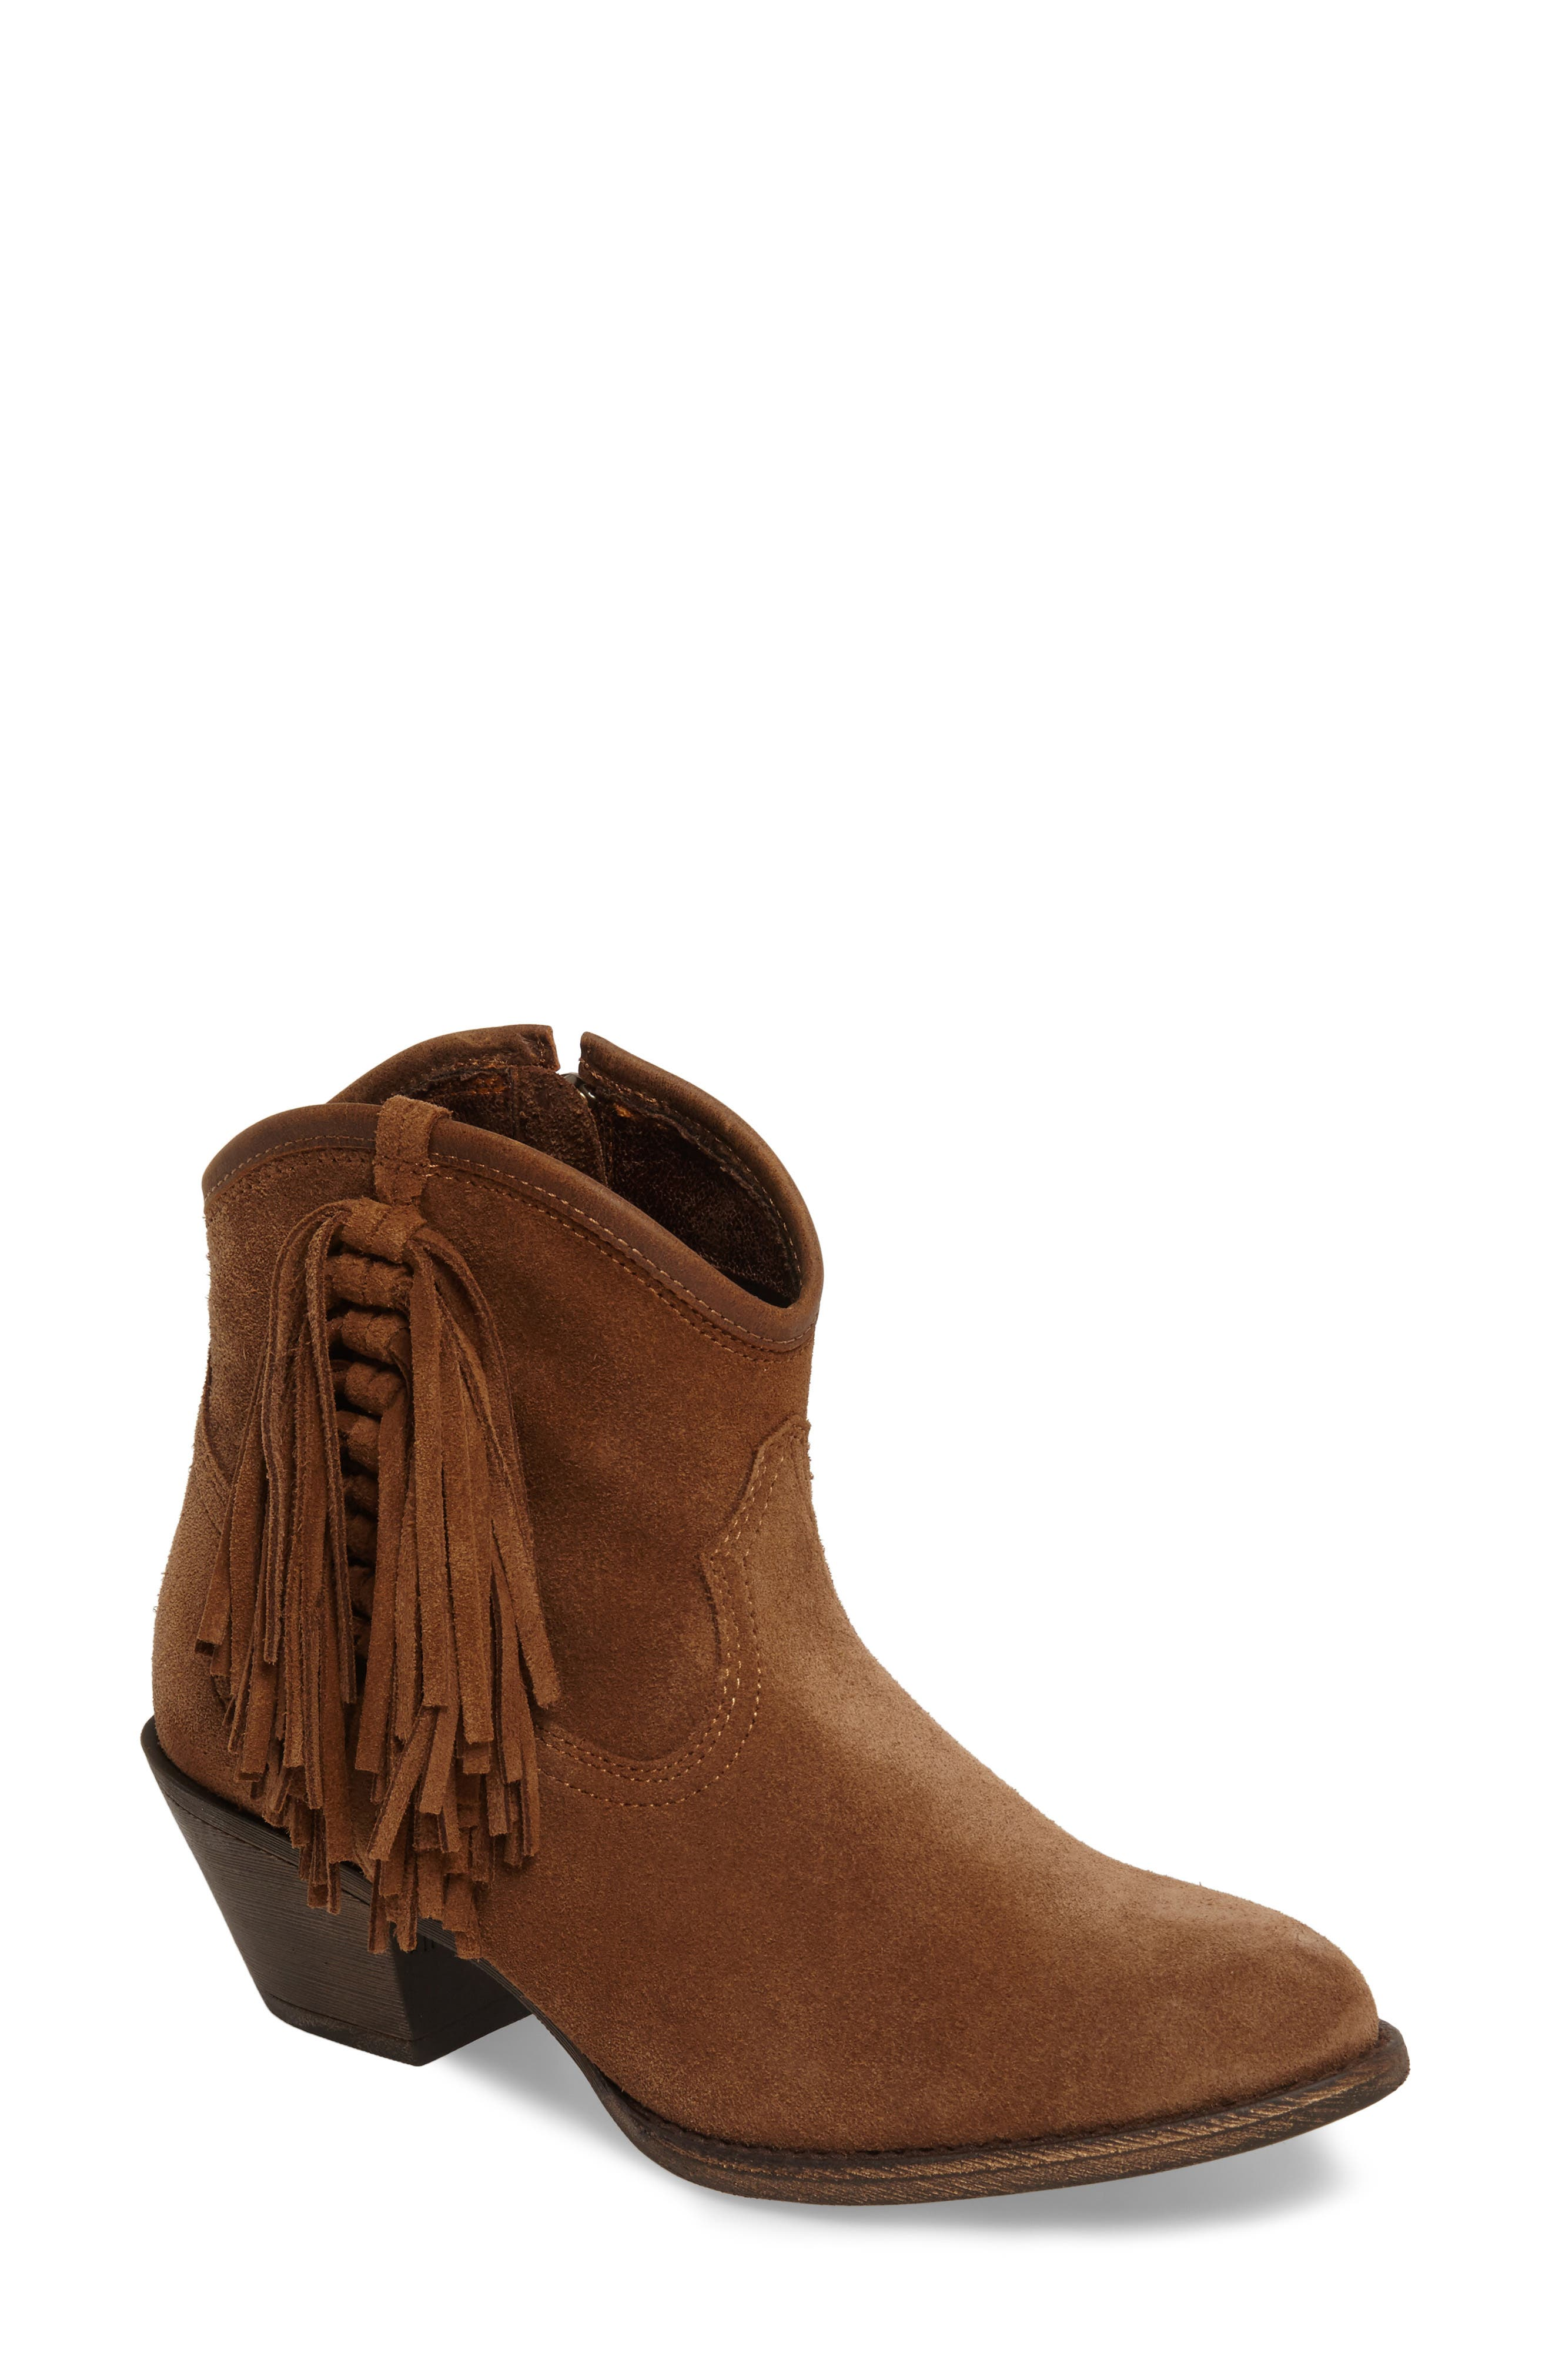 Alternate Image 1 Selected - Ariat Duchess Western Boot (Women)